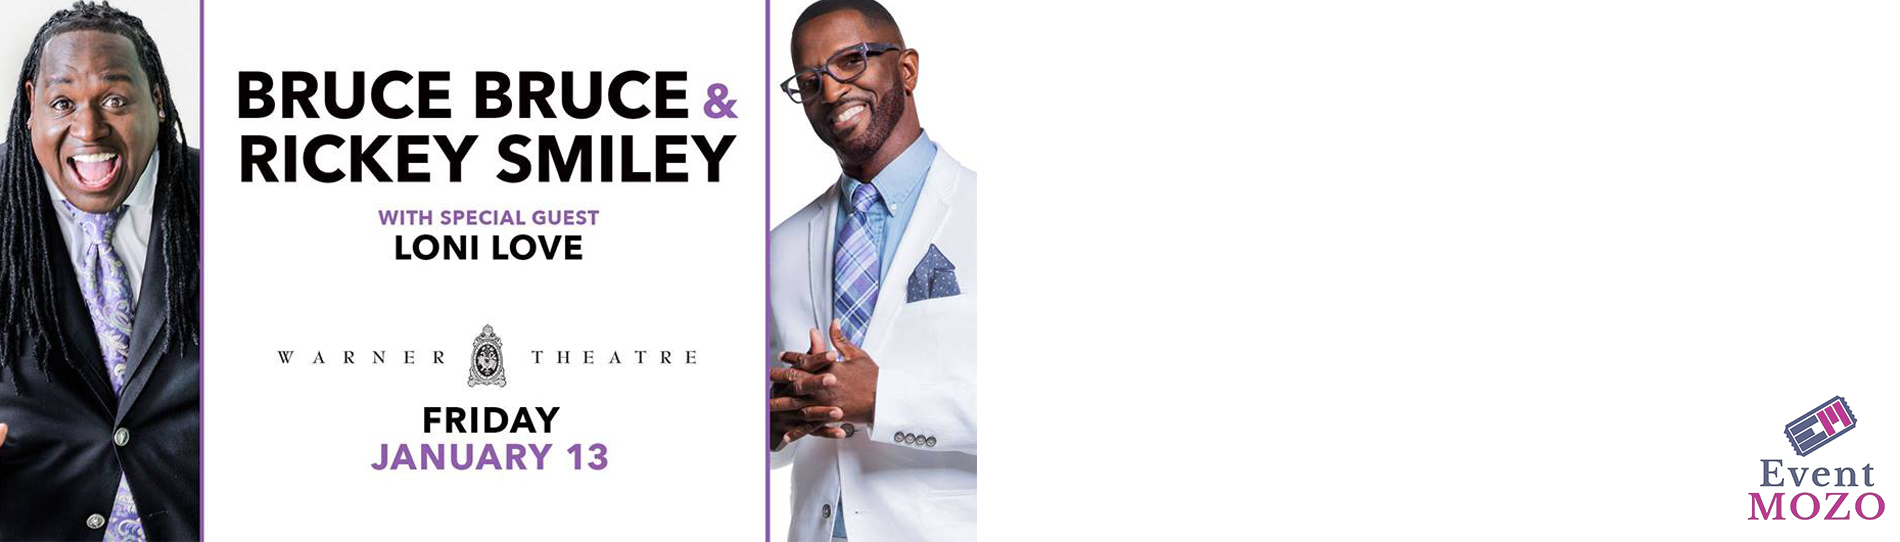 EventMozo Bruce Bruce & Rickey Smiley